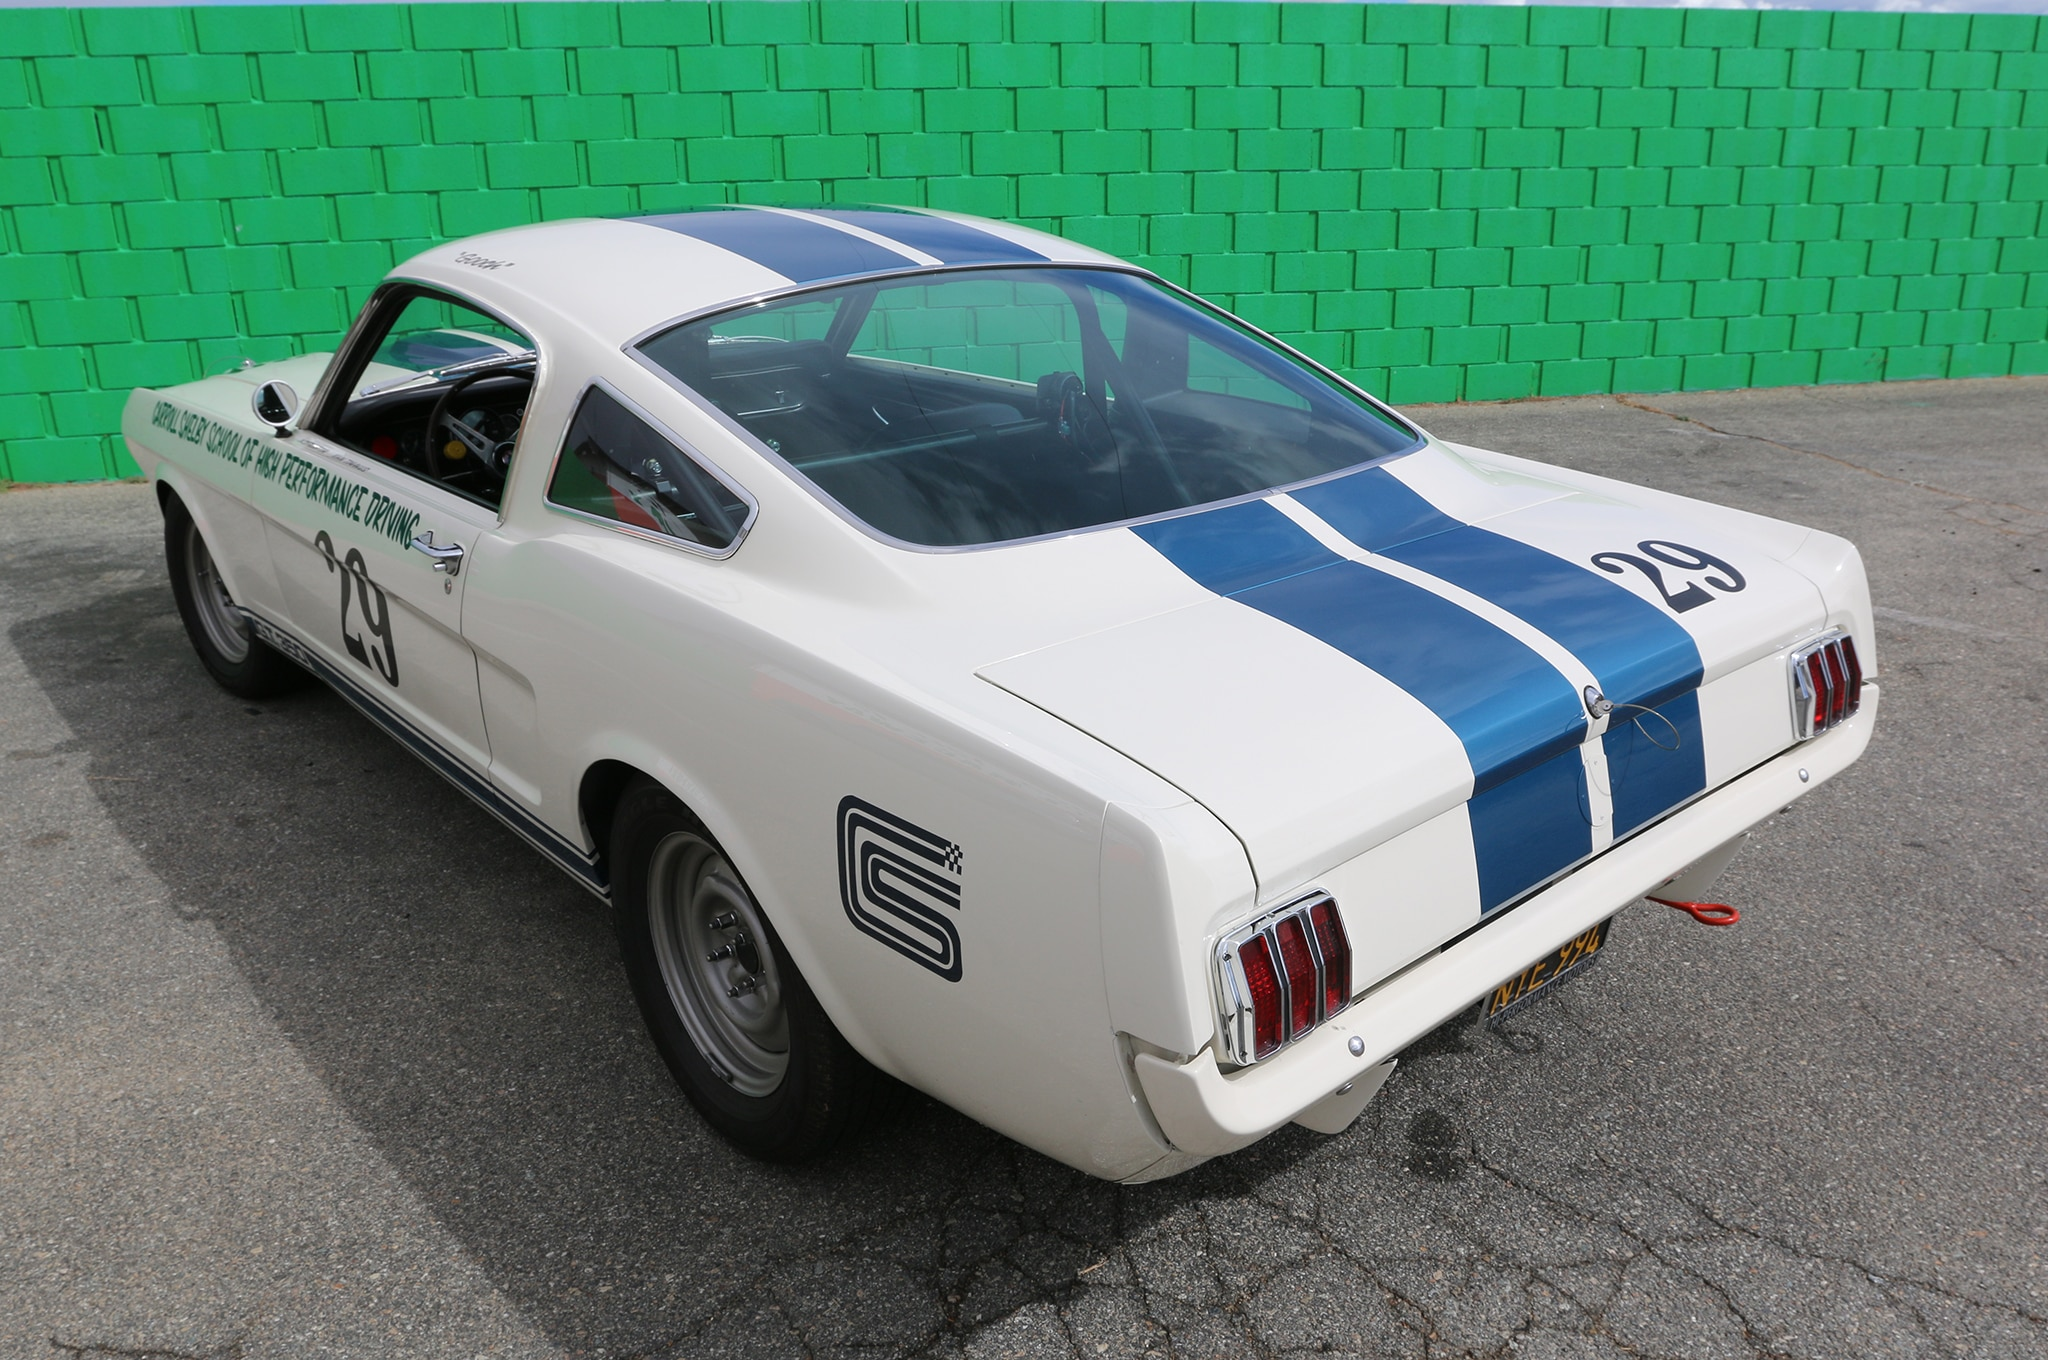 1966 Ford Mustang Rear View